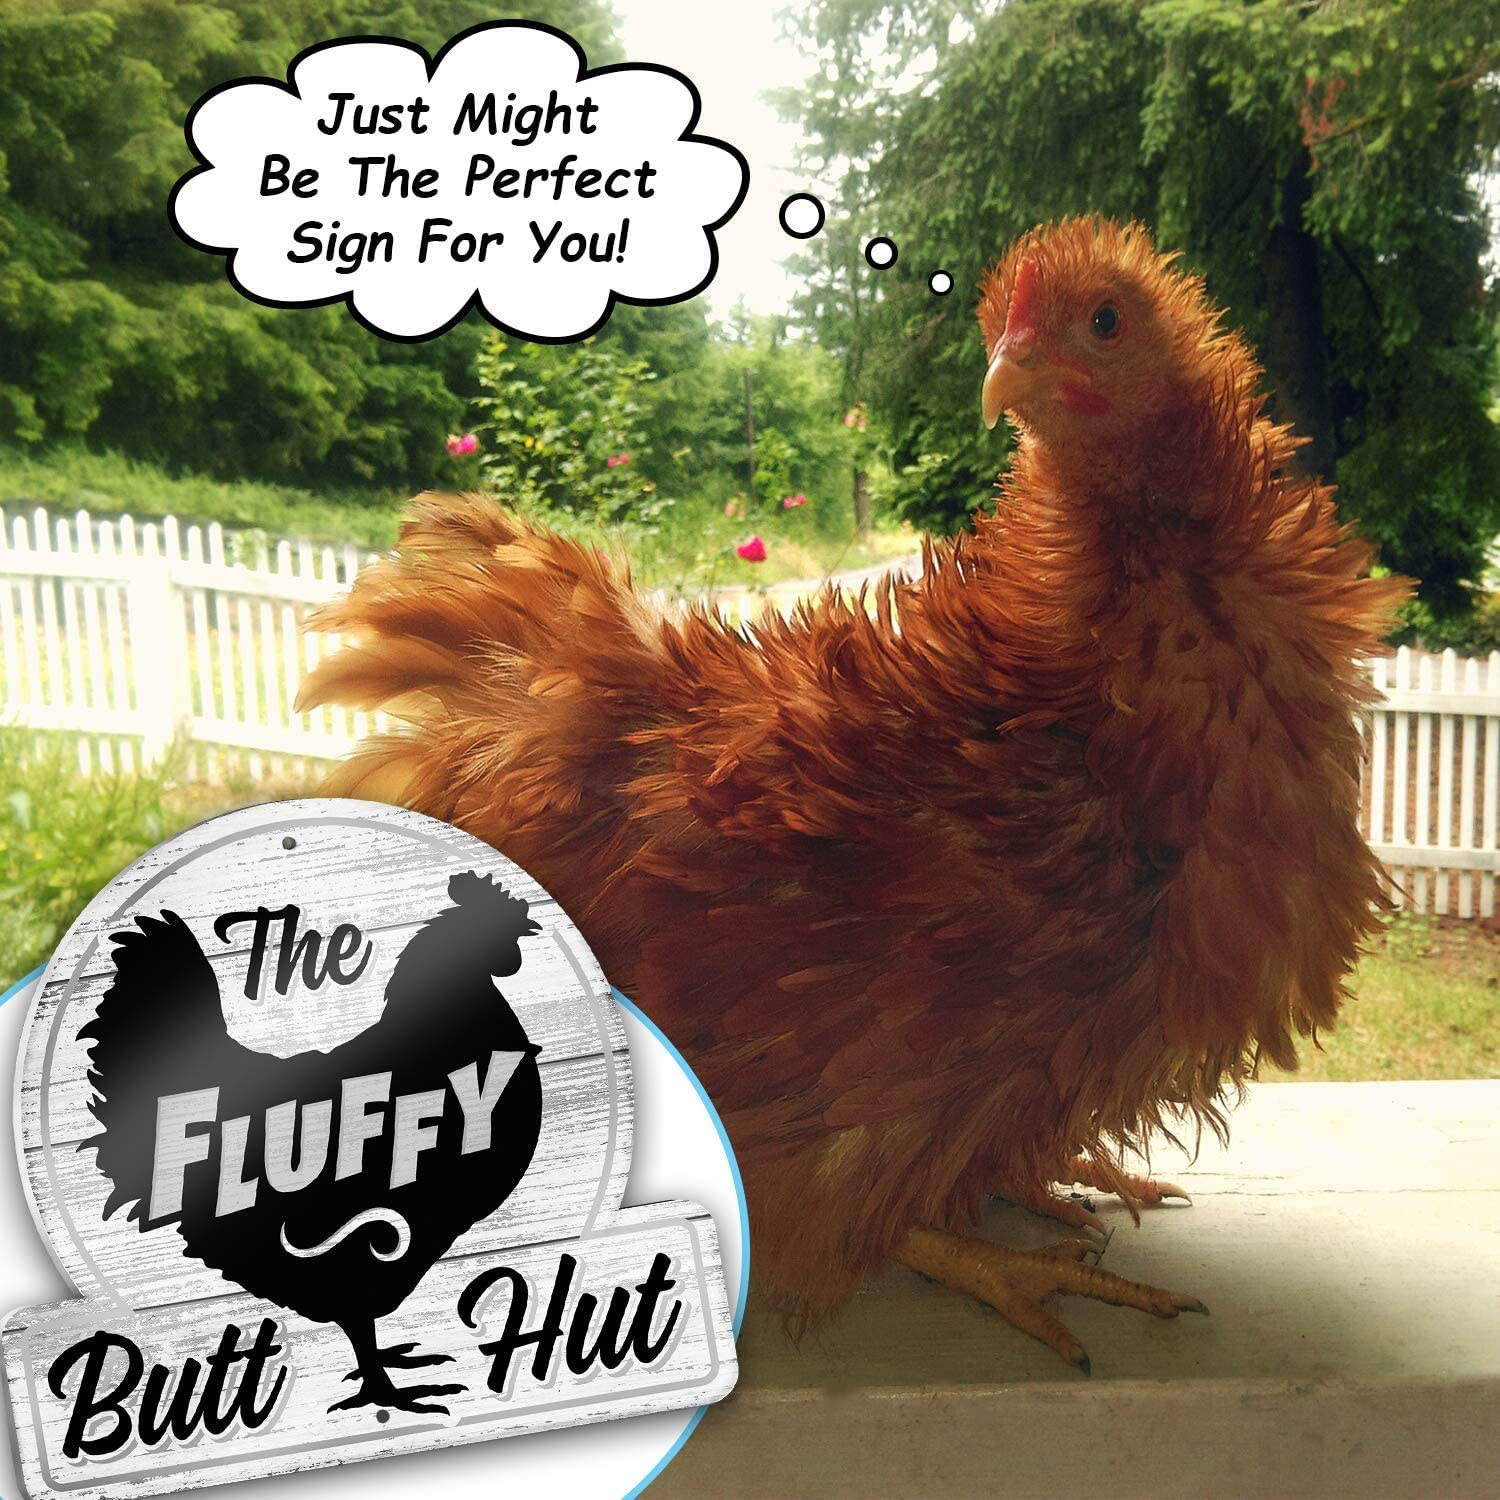 Gamefowl Barn The Fluffy Butt Hut Outdoor Shed Accessories /& Decor Rooster Shelter /& Funny Hen House PVC Plaque Bigtime Signs Chicken Coop Sign Bright Colors Clean Vector Graphic Designs